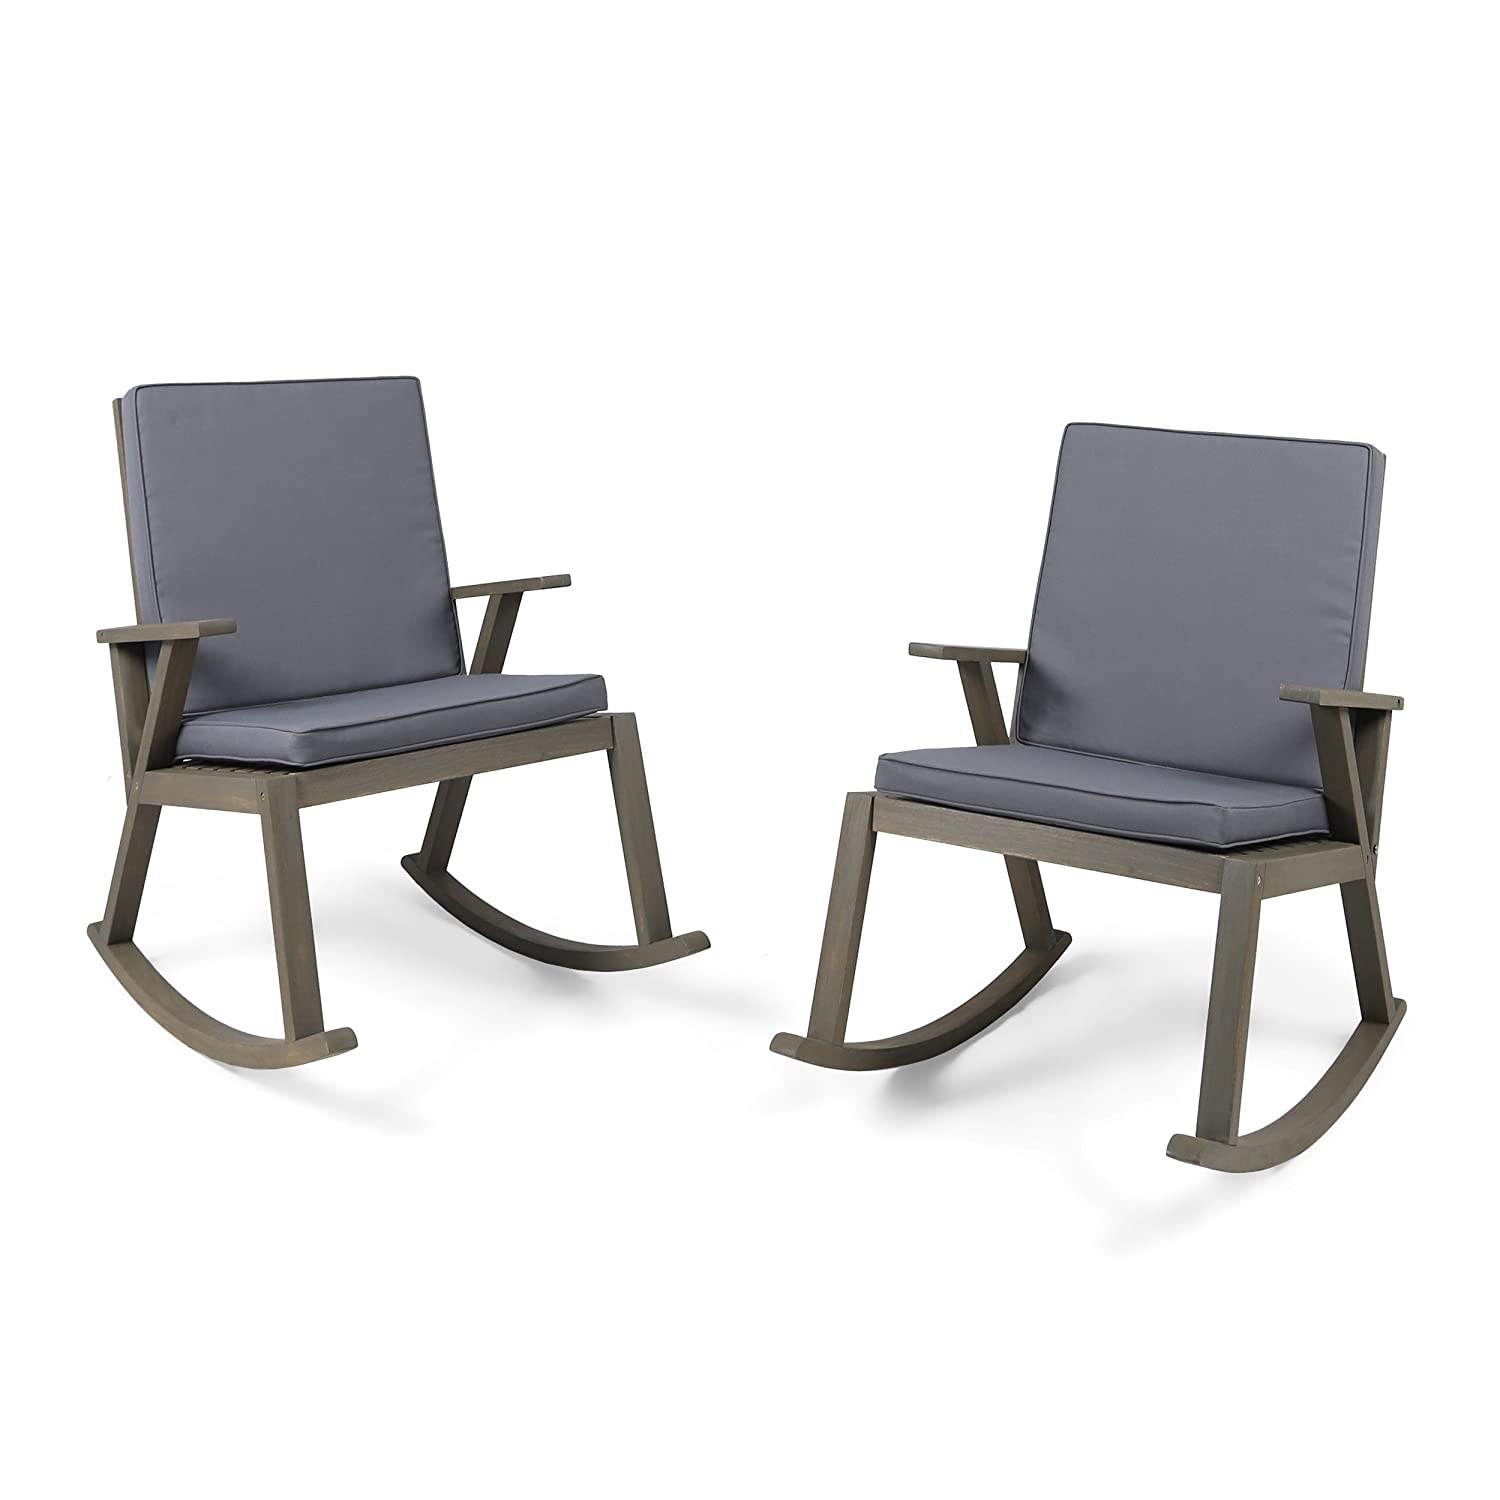 Christopher Knight Home 304687 Andy Outdoor Acacia Wood Rocking Chair with Cushion Set of 2 Dark Grey, Finish